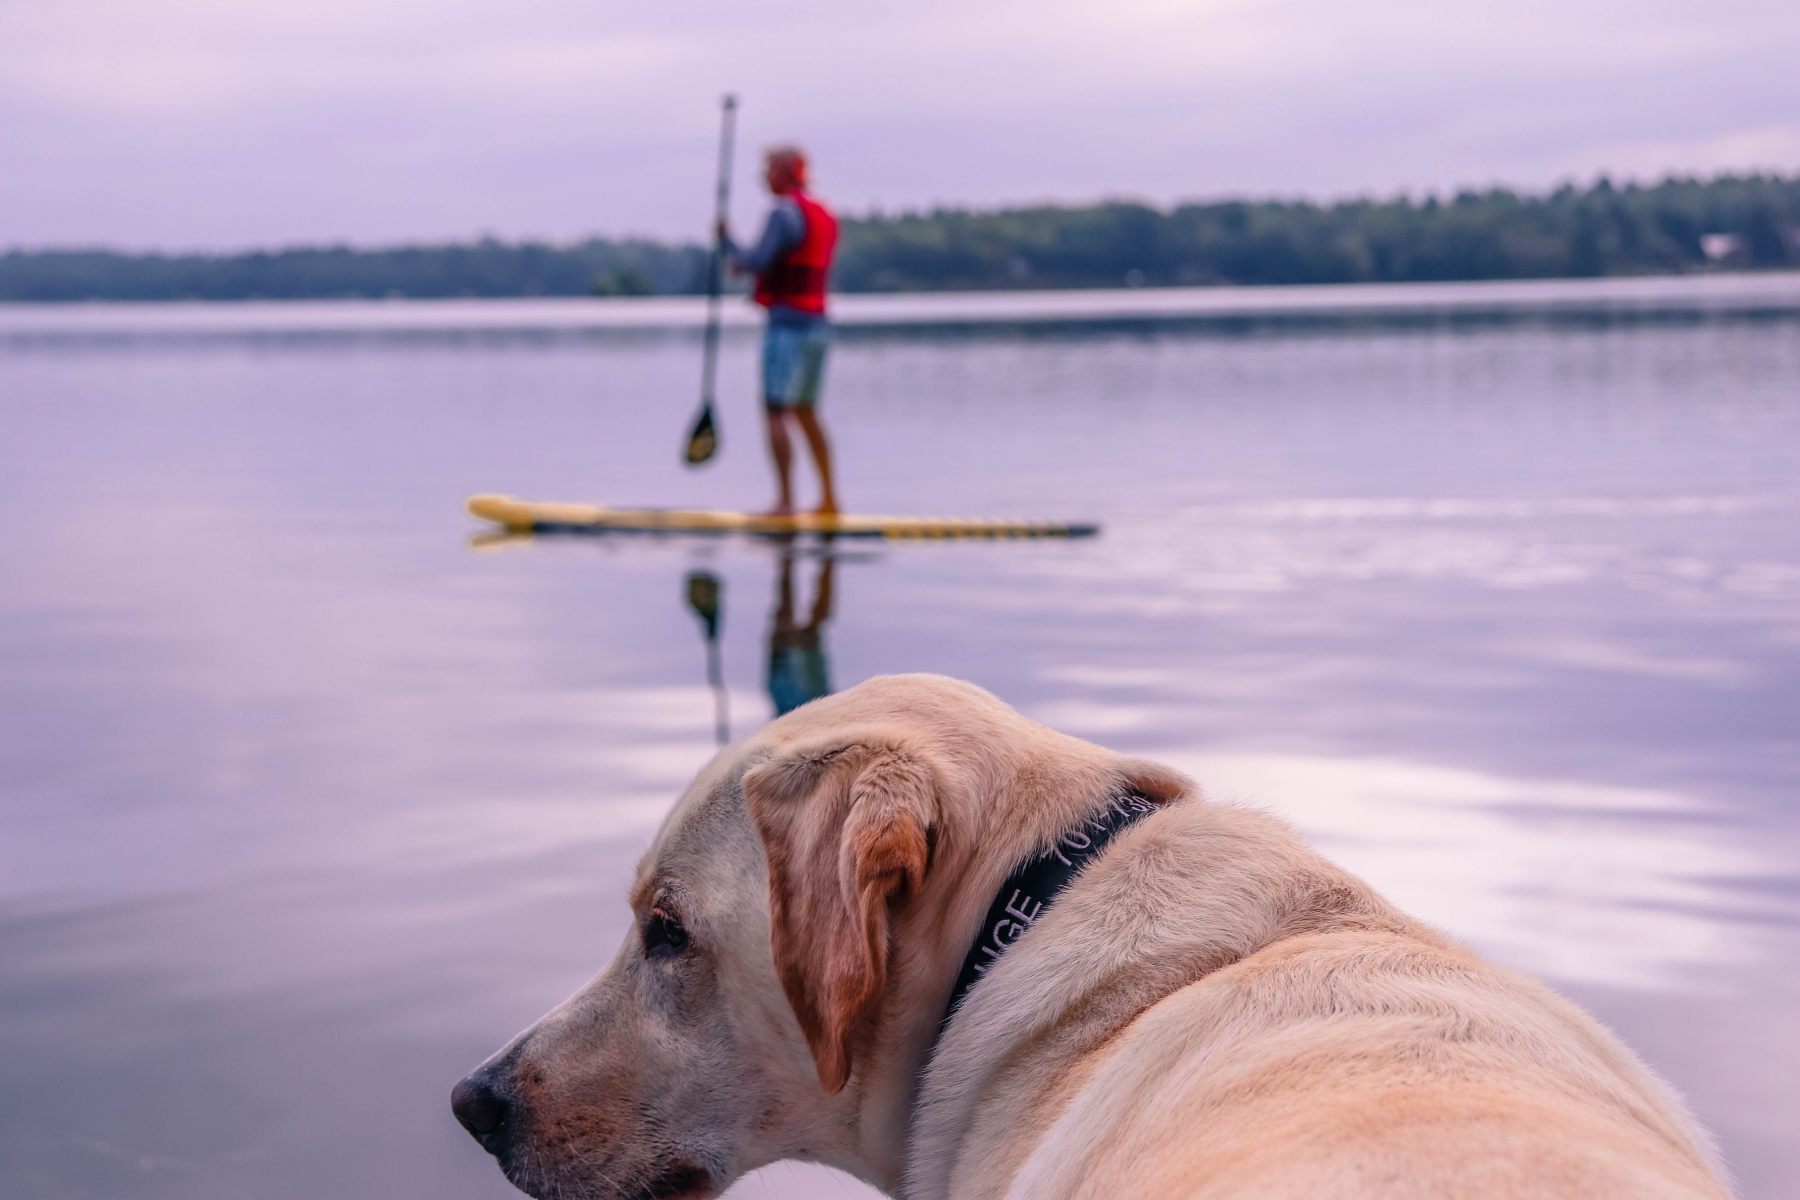 Dog Waiting for Paddle boarder